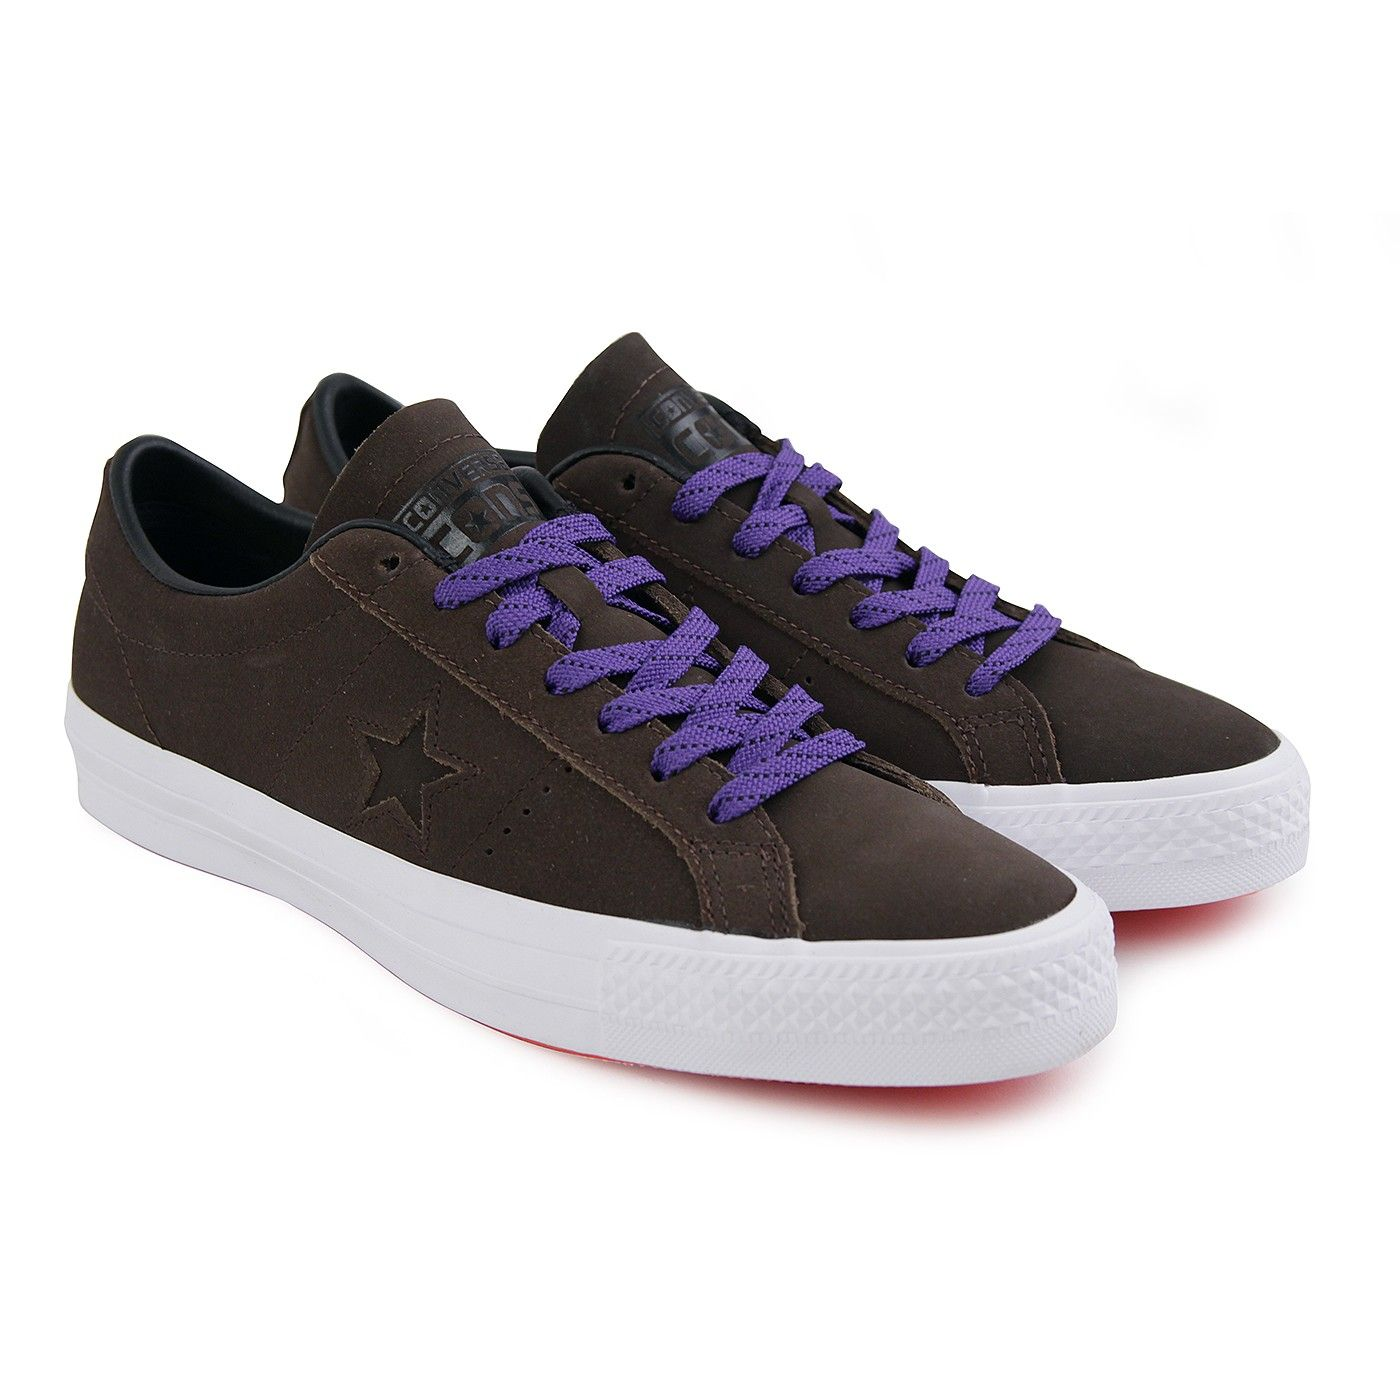 Online Mens Casual Shoes - Converse One Star Pro Leather Hot Cocoa/Black/White